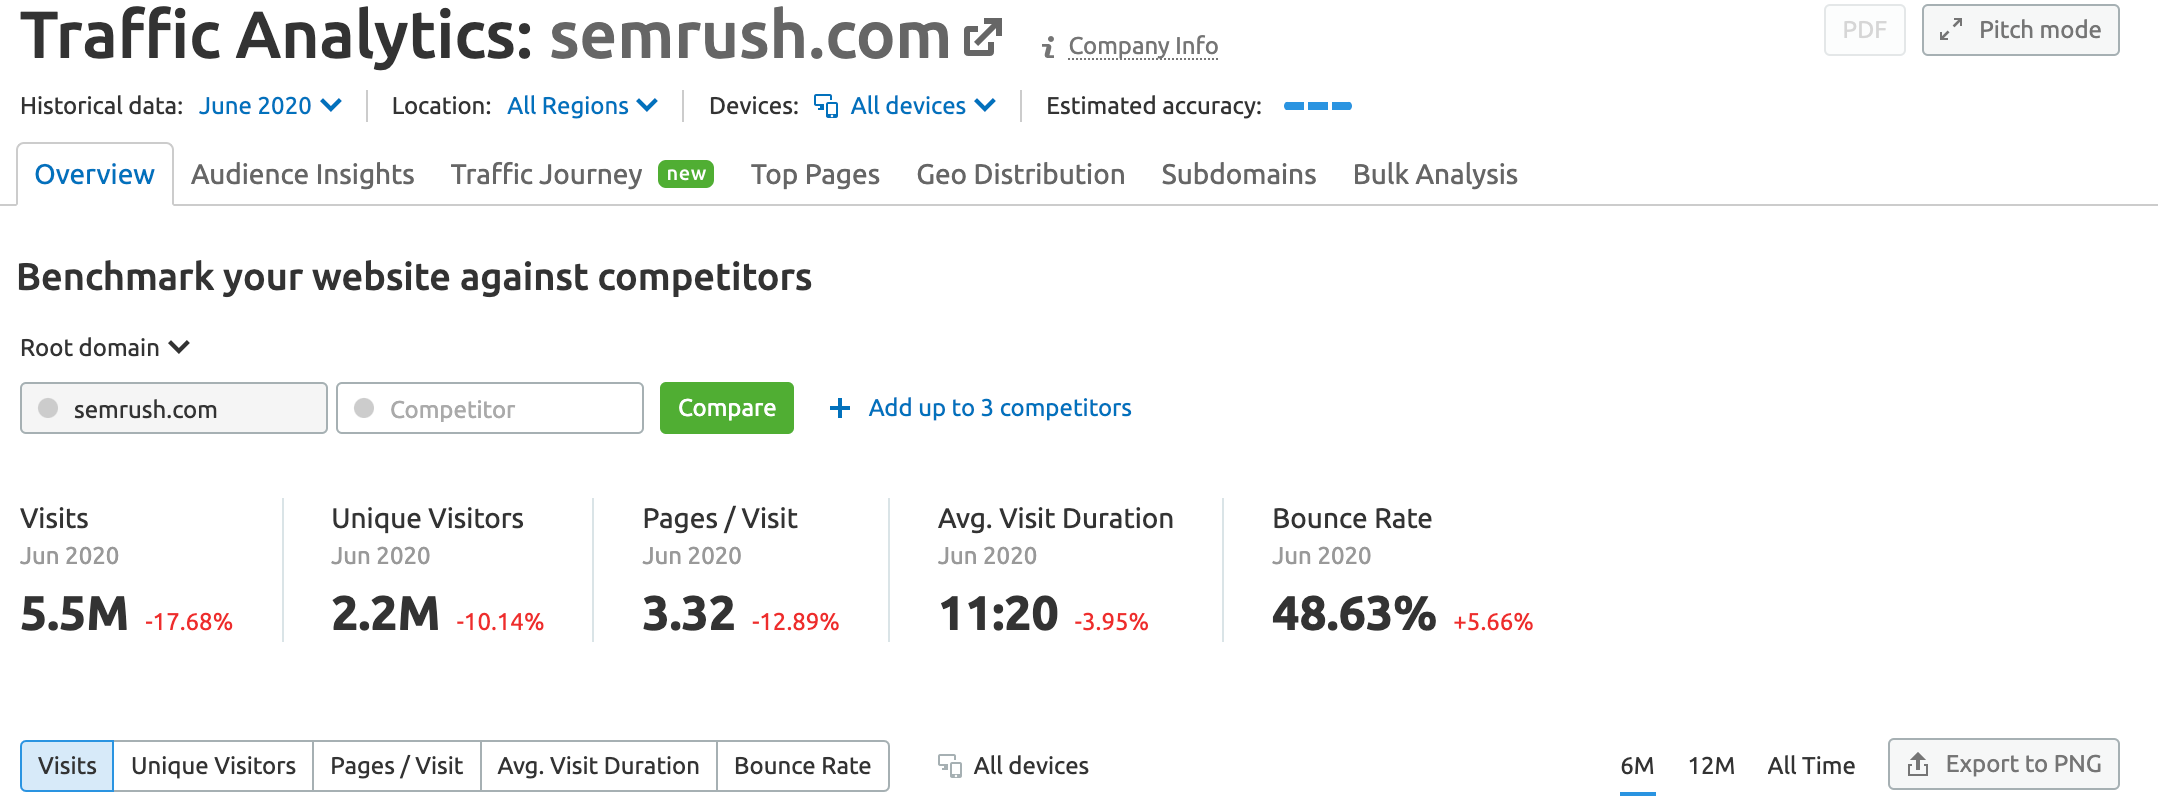 Semrush Traffic Analytics